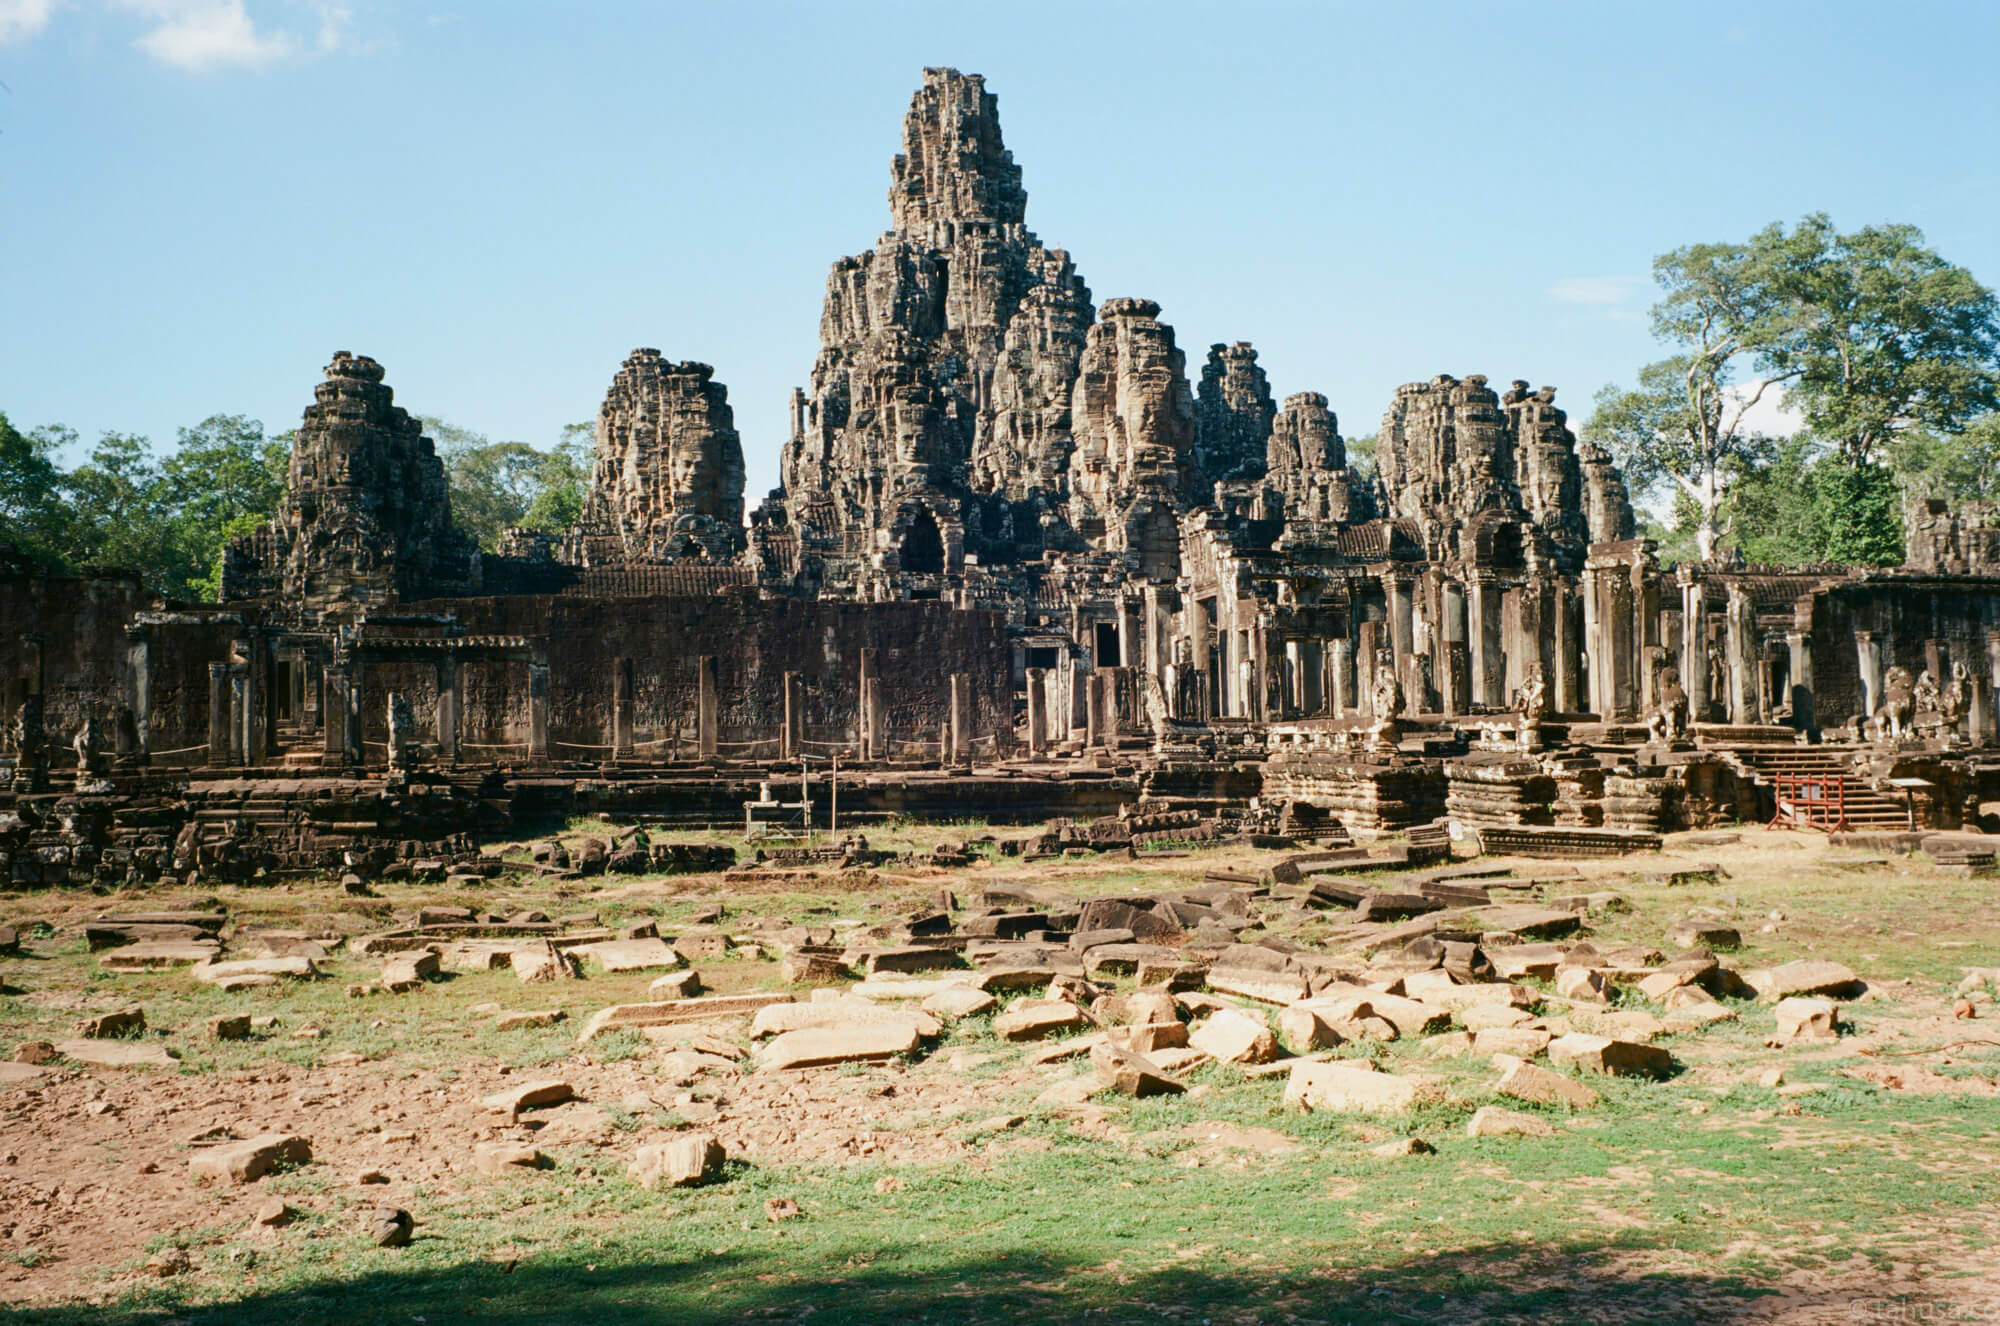 Tourist-spot-in-Angkor-Siem-Reap-Cambodiatravel-photography-using-ektar-100-kodak-and-summilux-35mm-f1.4-pre-asph-infinity-lock-leica-film